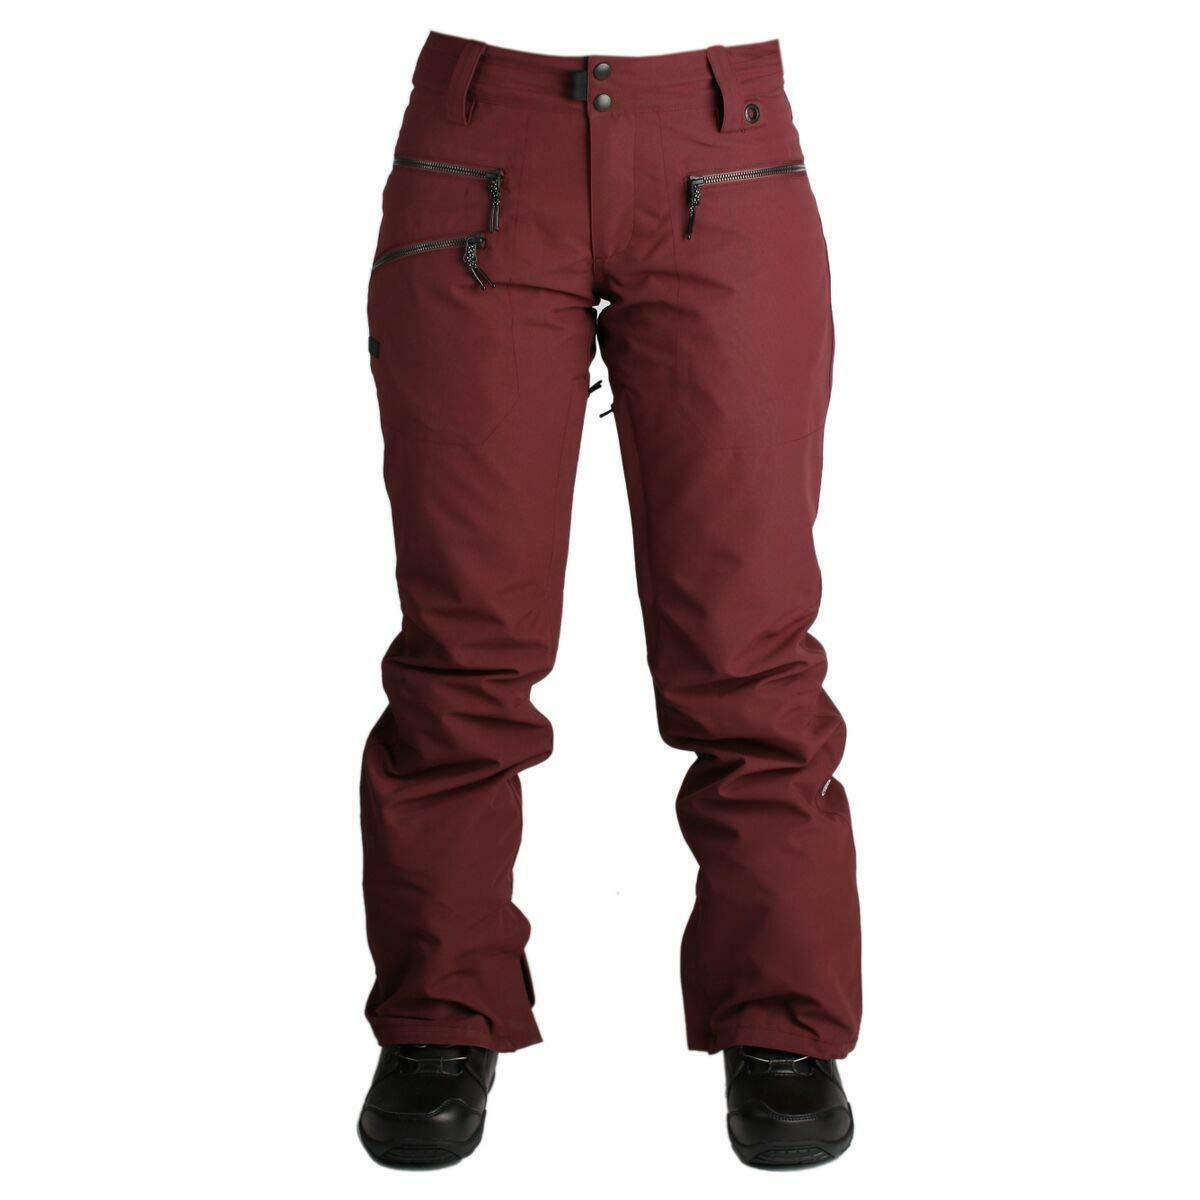 RIDE Women's LESHI Snow Pants - Burgundy Oxford -  Small - NWT  preferential